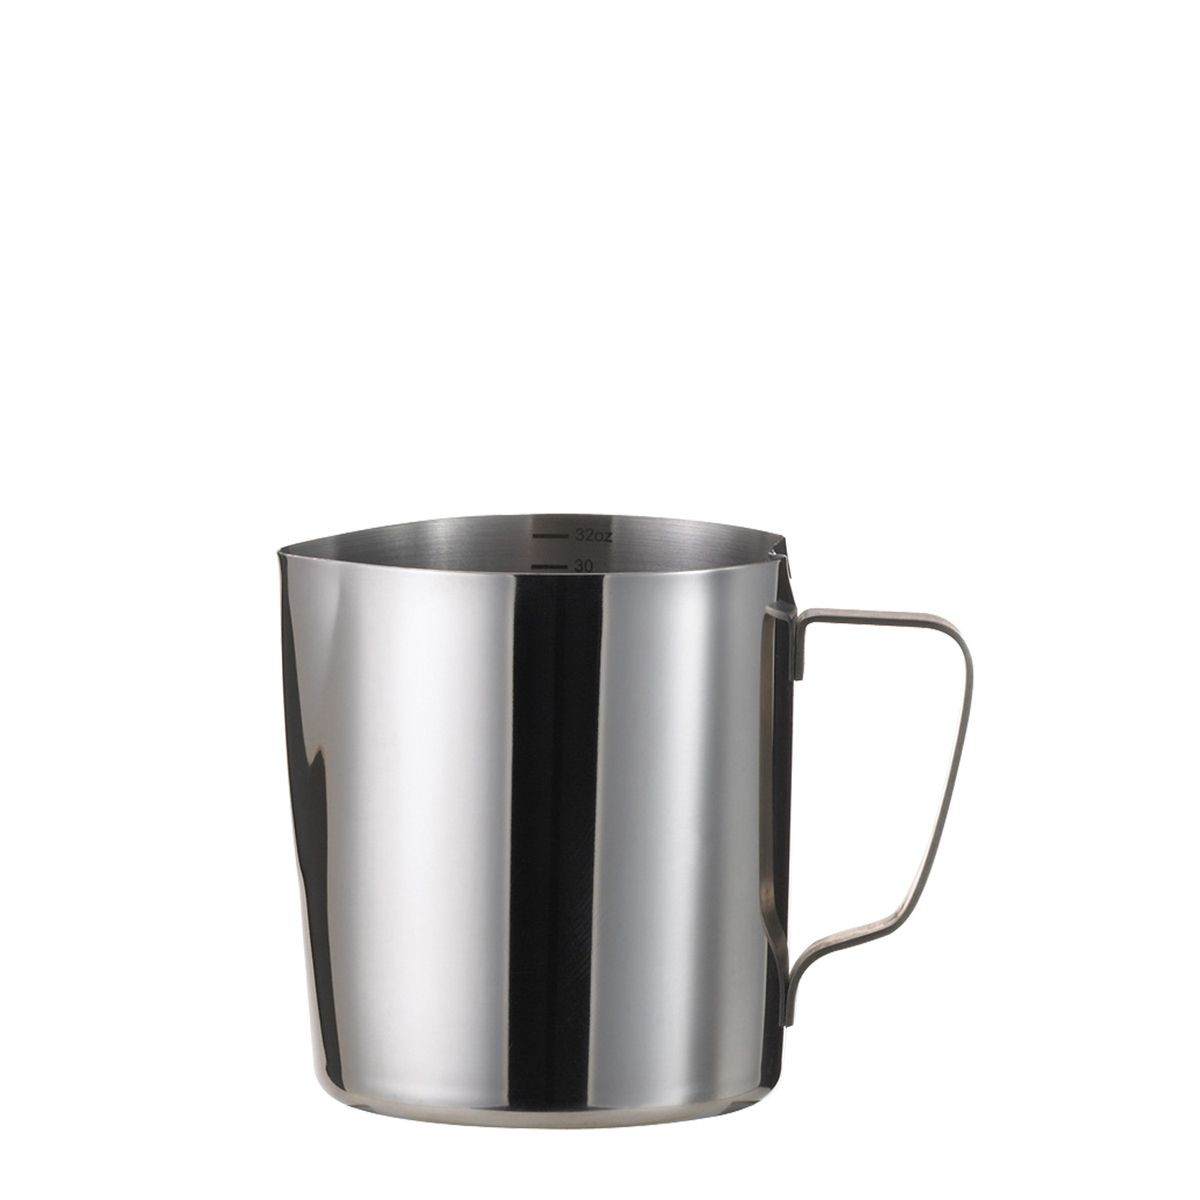 Service Ideas FROTH326 Frothing Pitcher 32 oz. with 6 oz. Increments